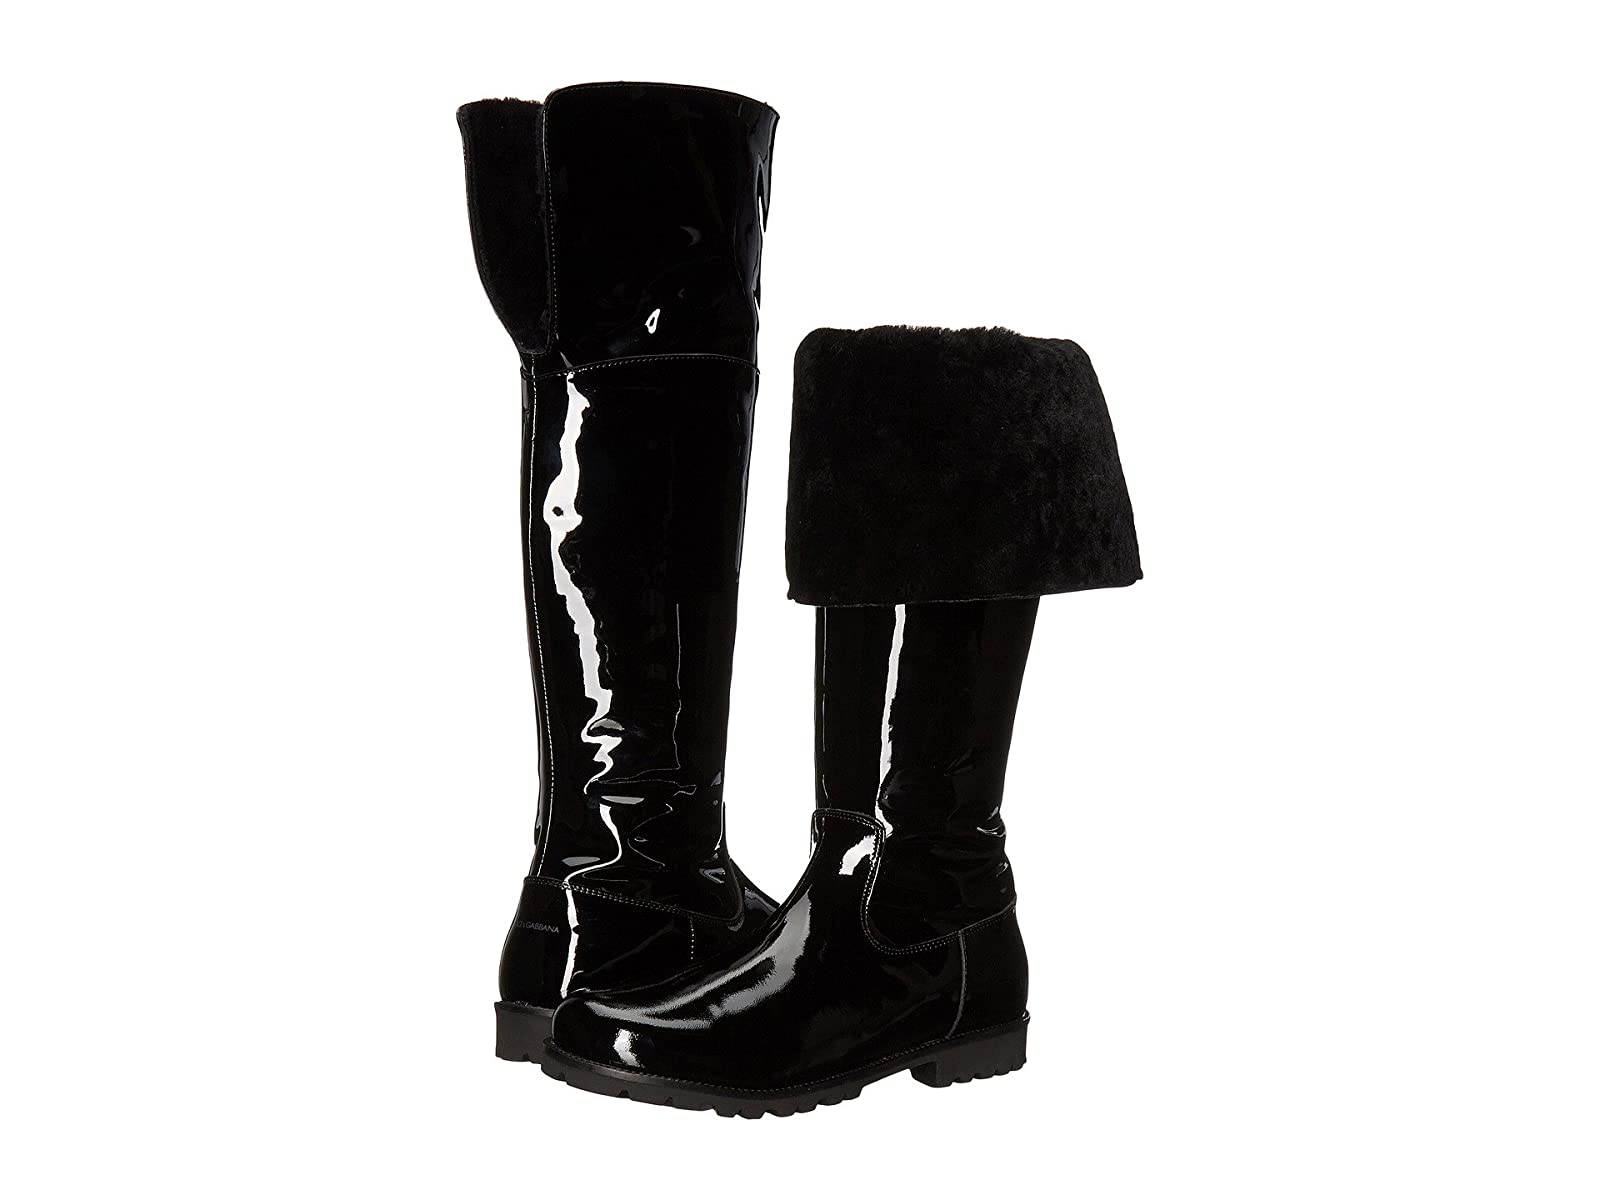 Dolce & Gabbana Kids Tall Boot (Big Kid)Cheap and distinctive eye-catching shoes